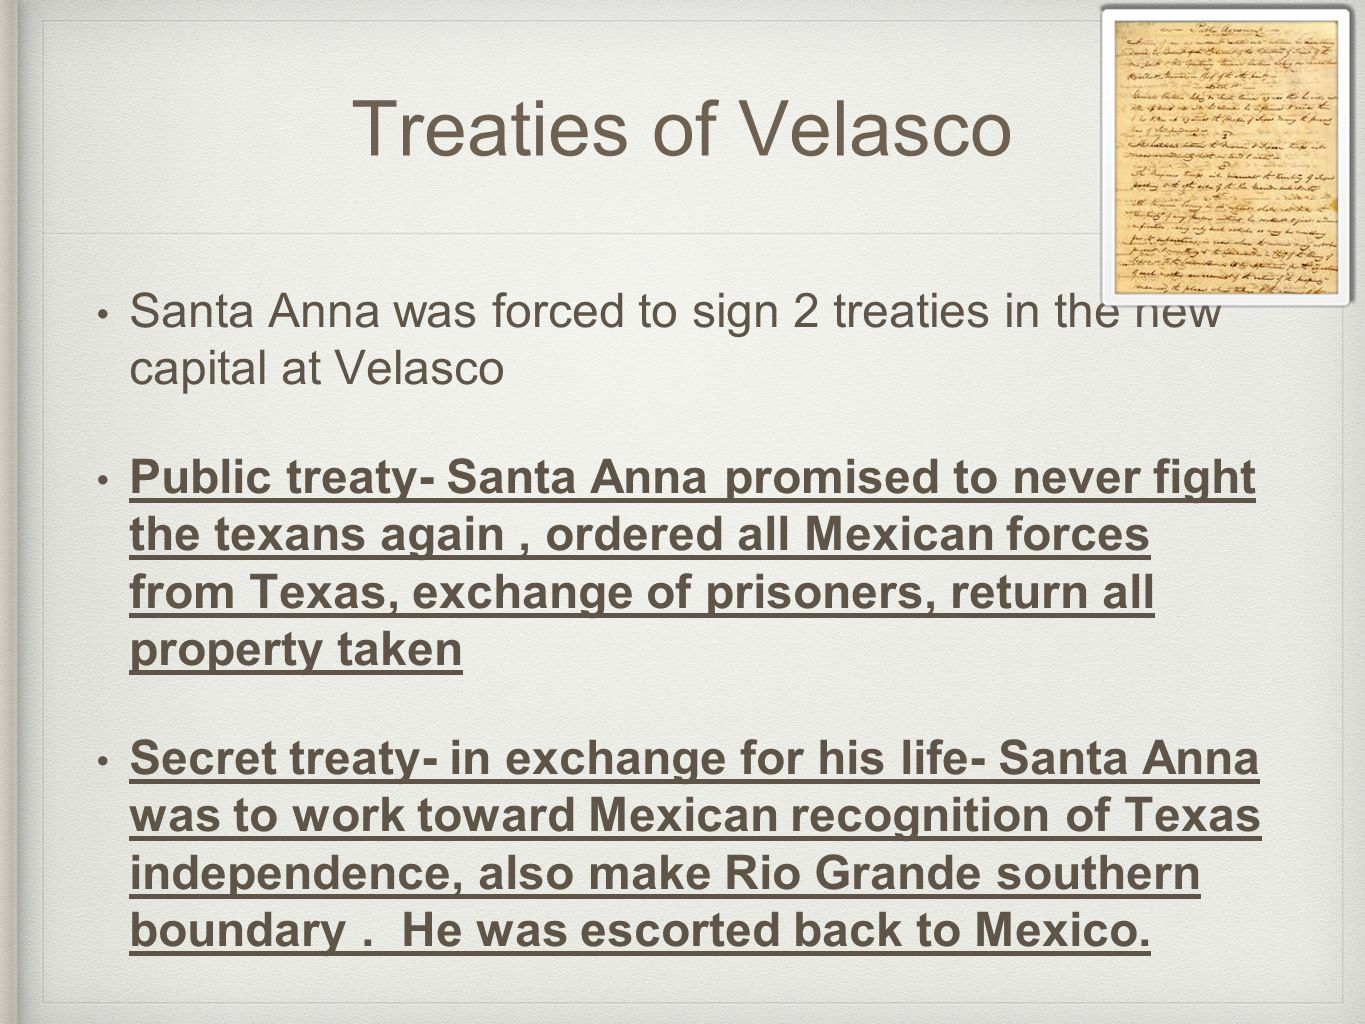 Treaties of Velasco Santa Anna was forced to sign 2 treaties in the new capital at Velasco Public treaty- Santa Anna promised to never fight the texan